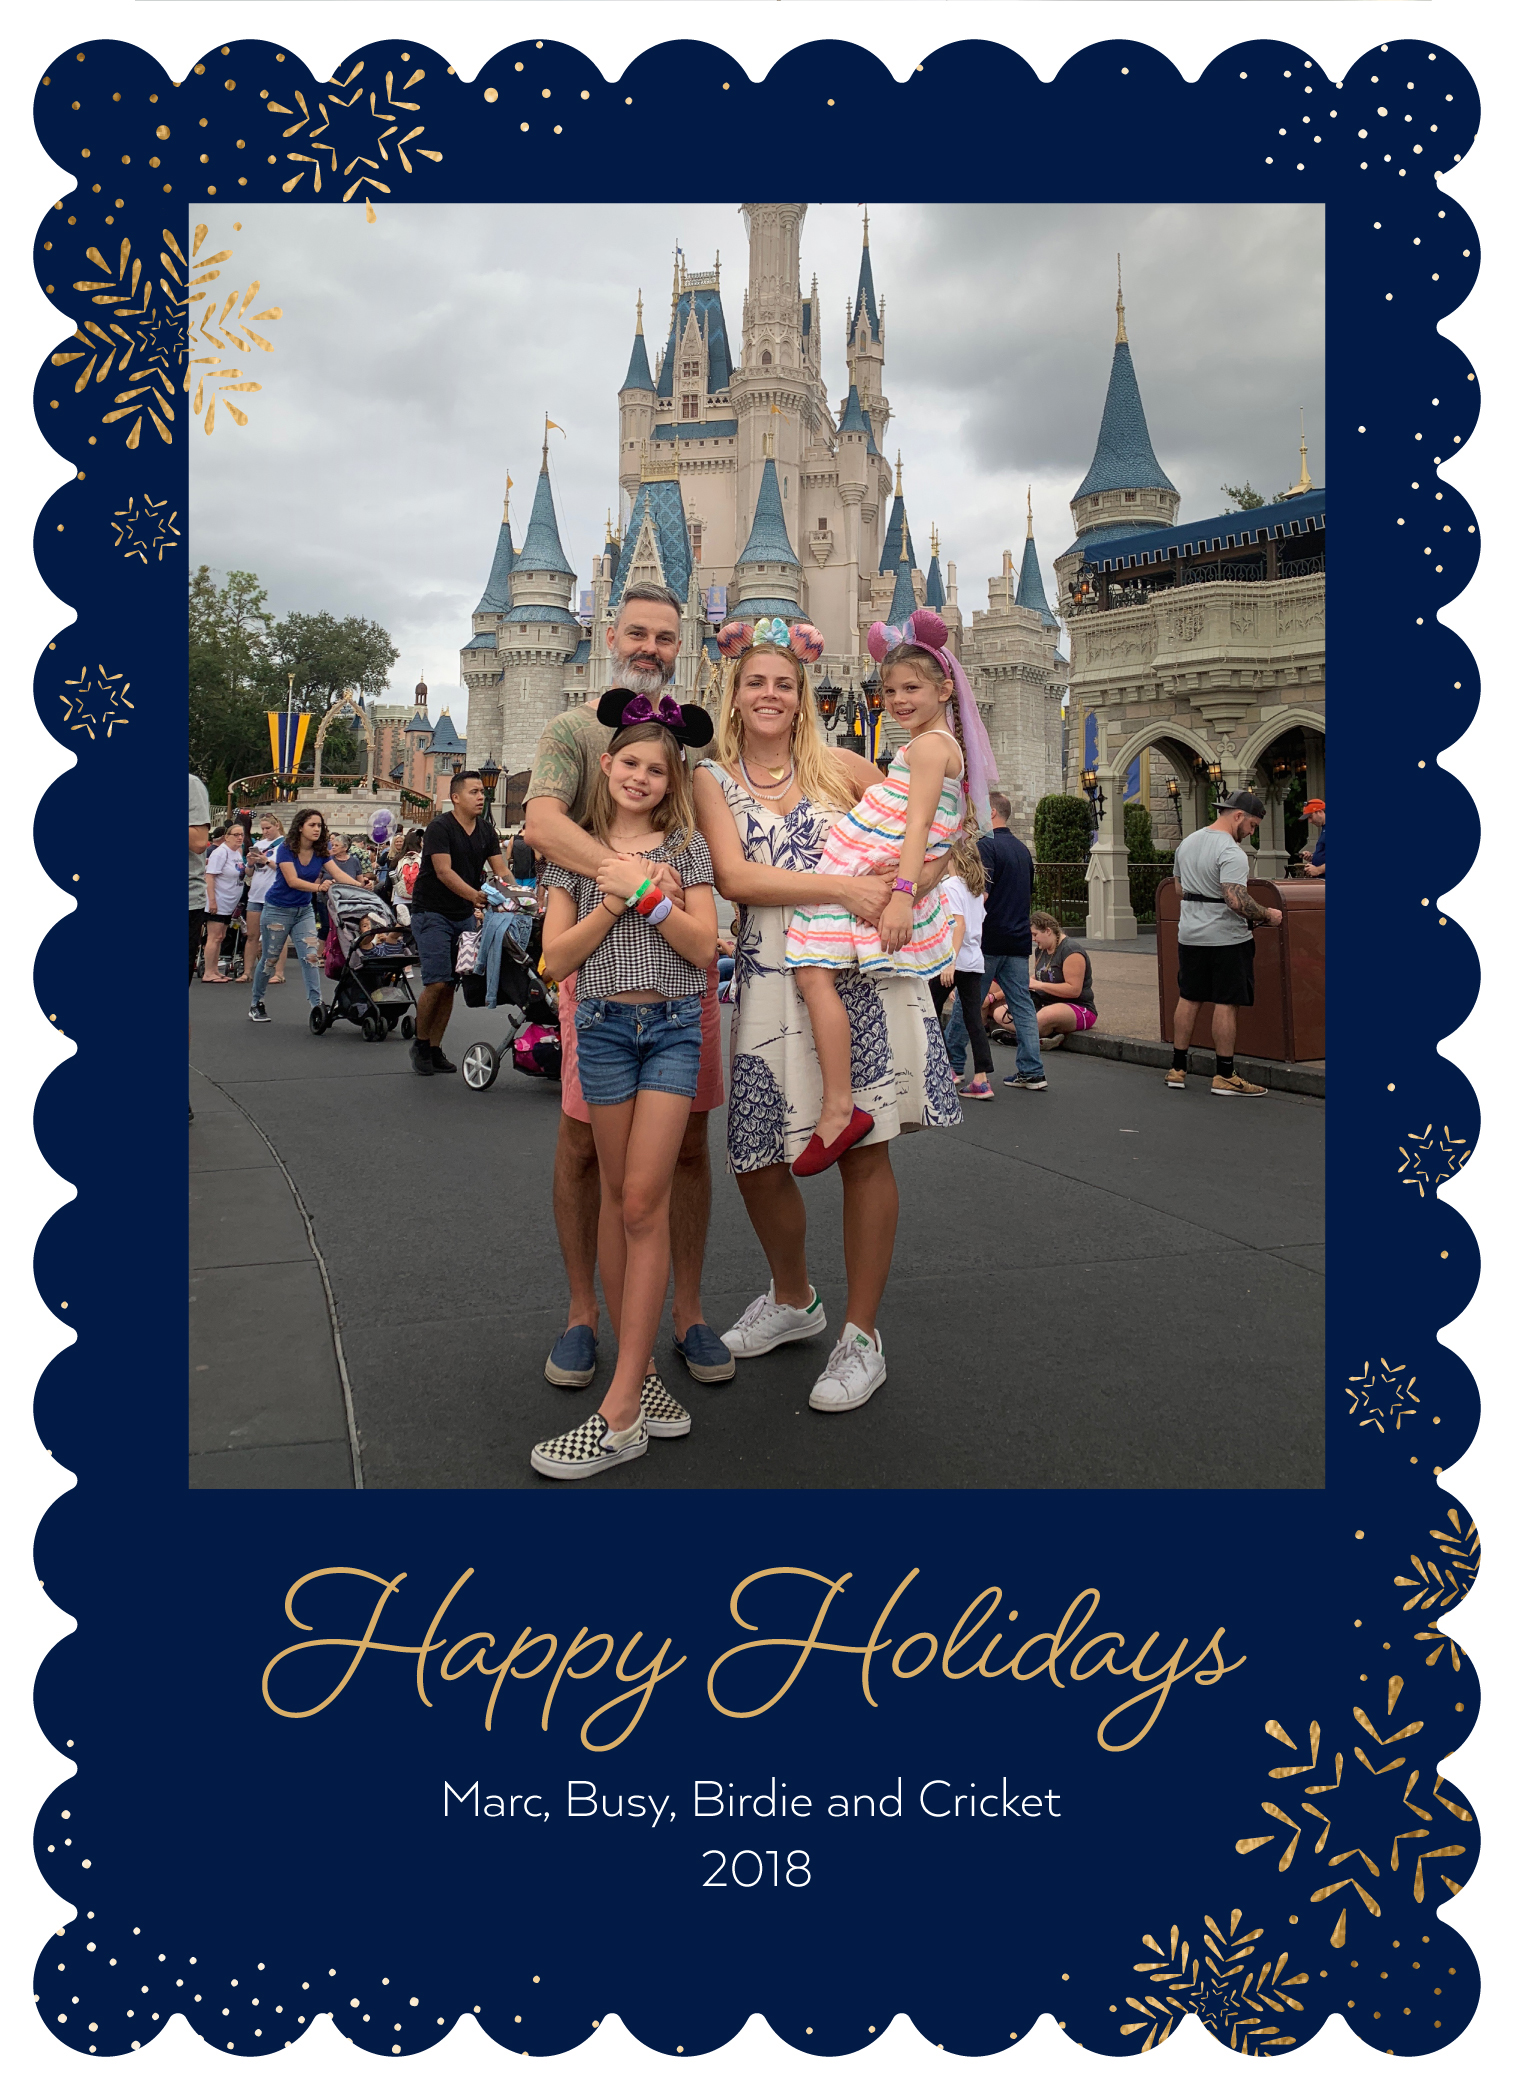 Busy-Philipps-holiday-card - The Busy Tonight host shared a sweet picture with her husband, Marc Silverstein, and daughters Birdie, 10, and Cricket, 5, at the happiest place on earth.